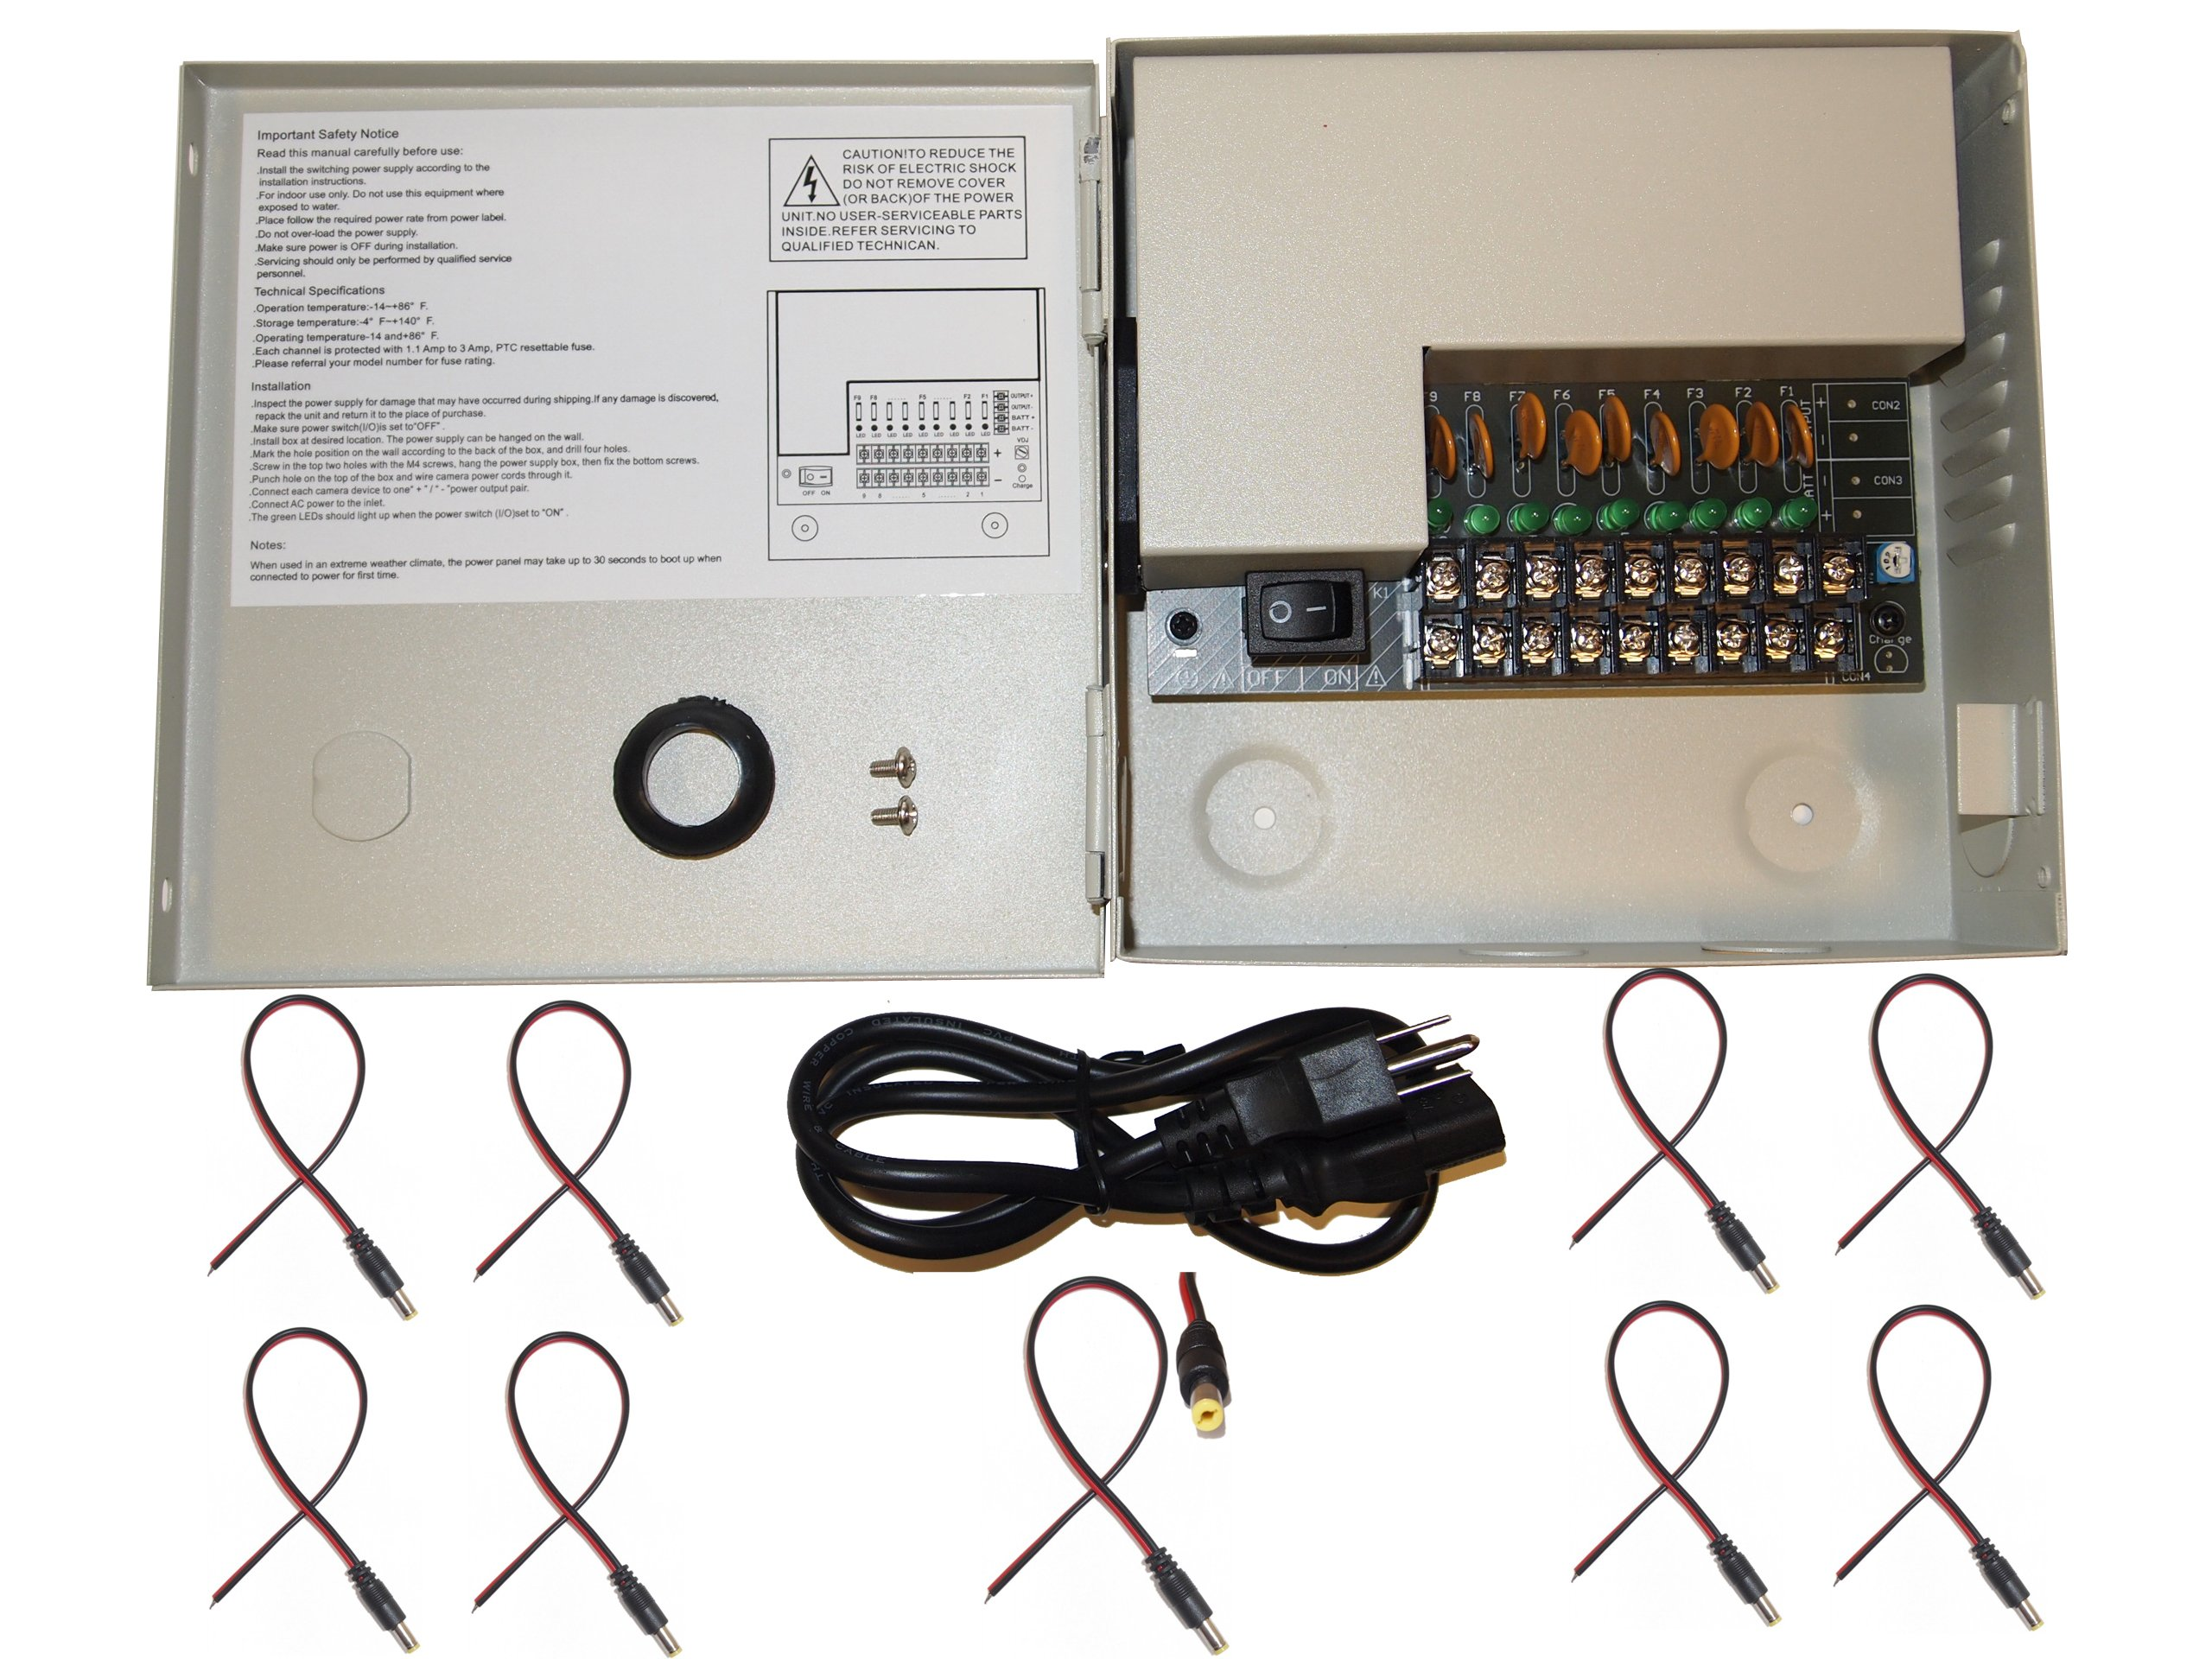 Evertech 9 Channel Output 12V DC CCTV Distributed Power Box with 9 Pcs. DC Pigtail for Security Camera Power Supply